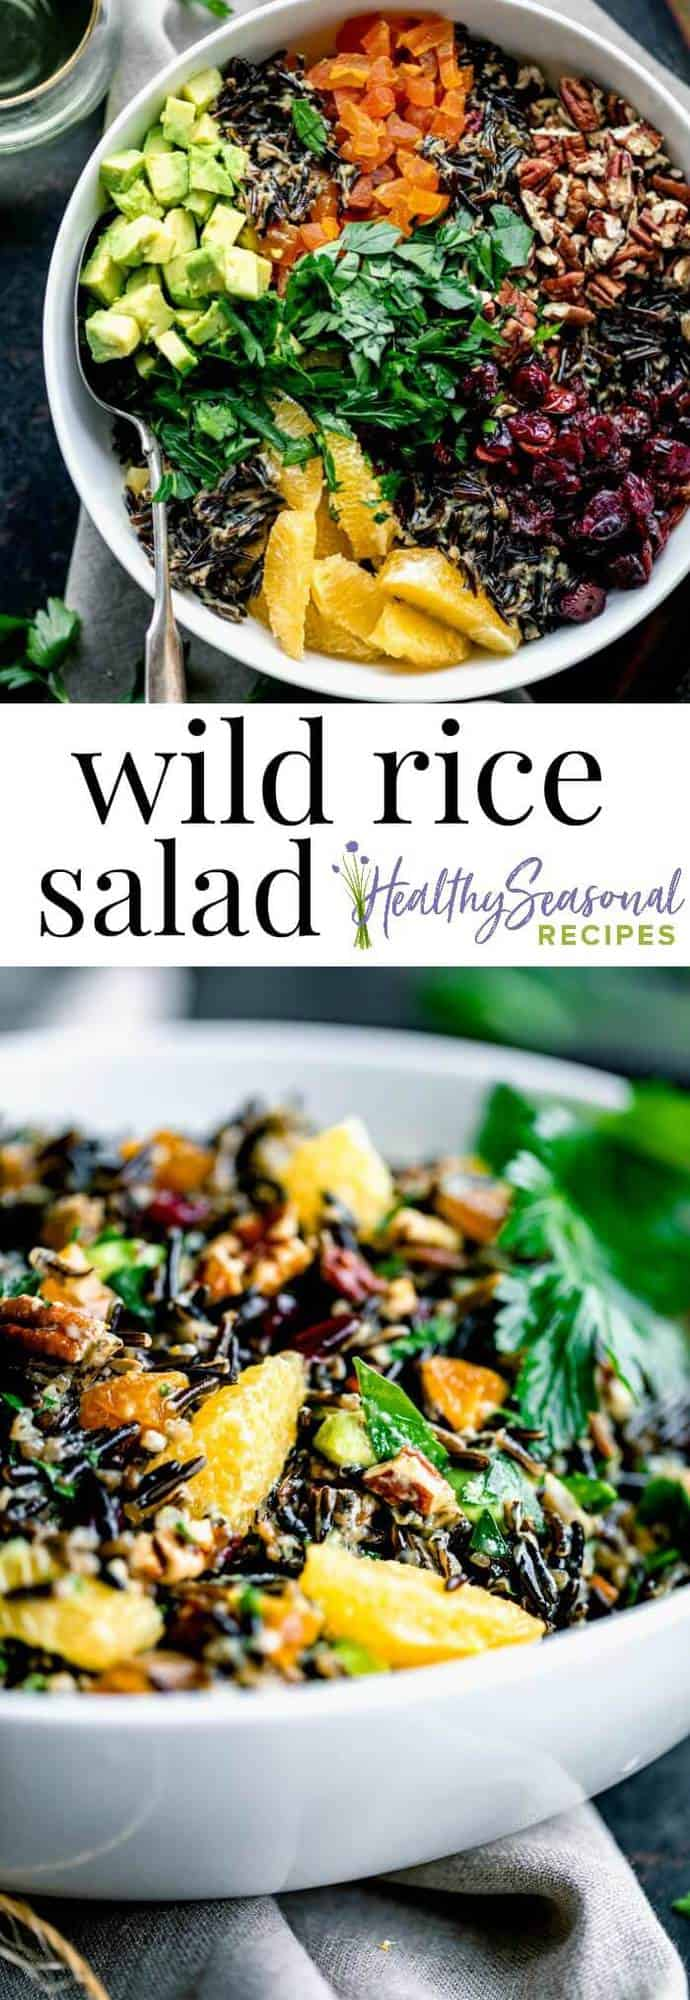 This is my very best WIld Rice Salad recipe that\'s made with Oranges, Pecans, apricots and avocado. This recipe is a special (make-ahead and healthy) side-dish to serve for Thanksgiving, Christmas, Hanukkah or any celebration or holiday really! #healthyseasonal #wildricesalad #wildrice #healthyrecipes #thanksgiving #christmasrecipes #sidedishes